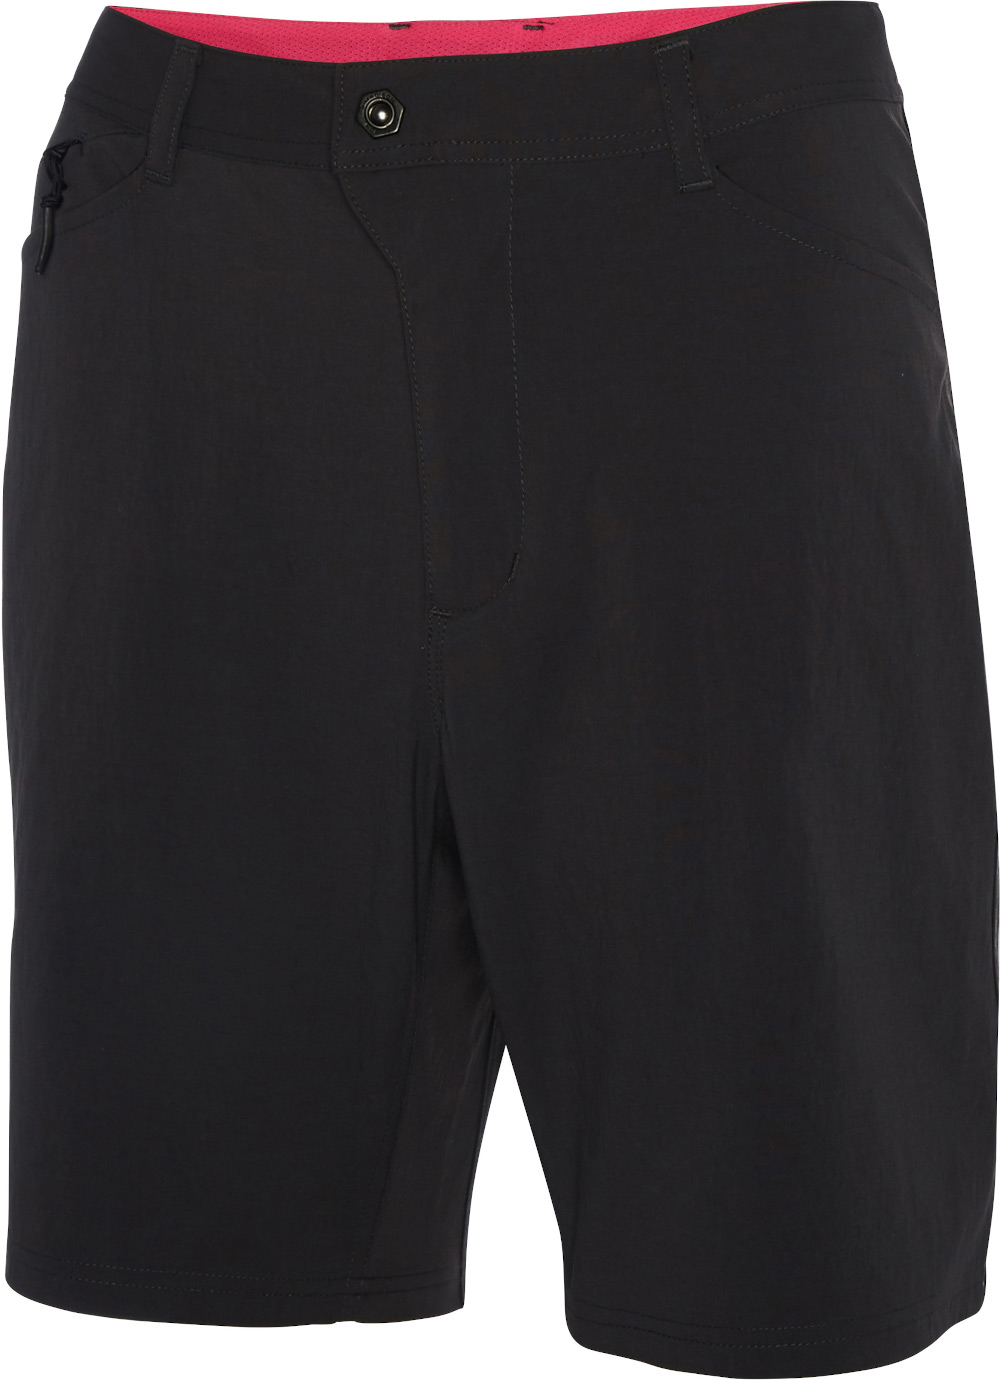 Madison Stellar Womens Shorts